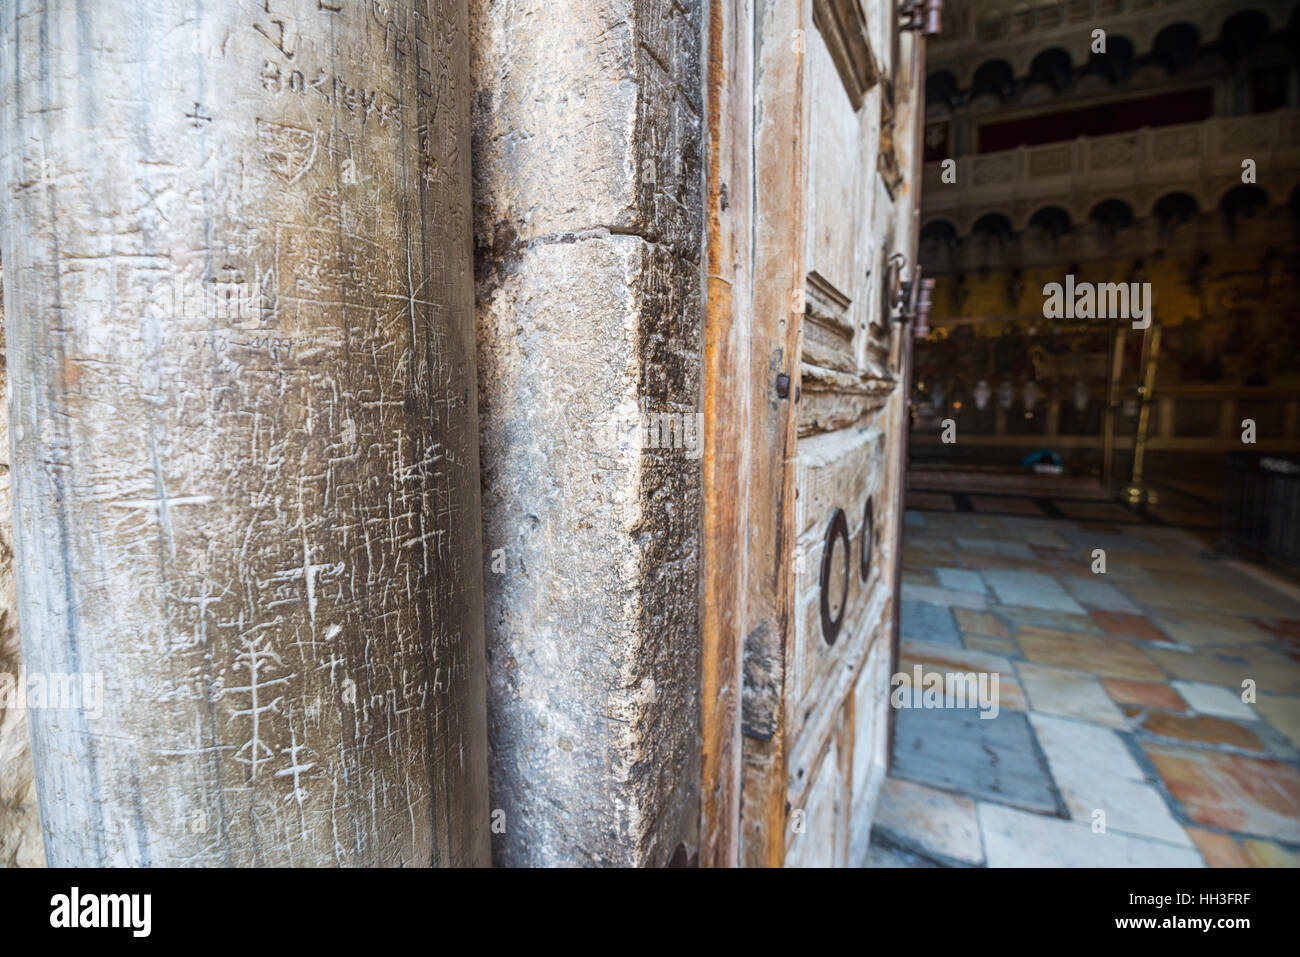 Marble pillars and old wooden door at the entrance to the Church of the Holy Sepulchre in Jerusalem, Israel Stock Photo